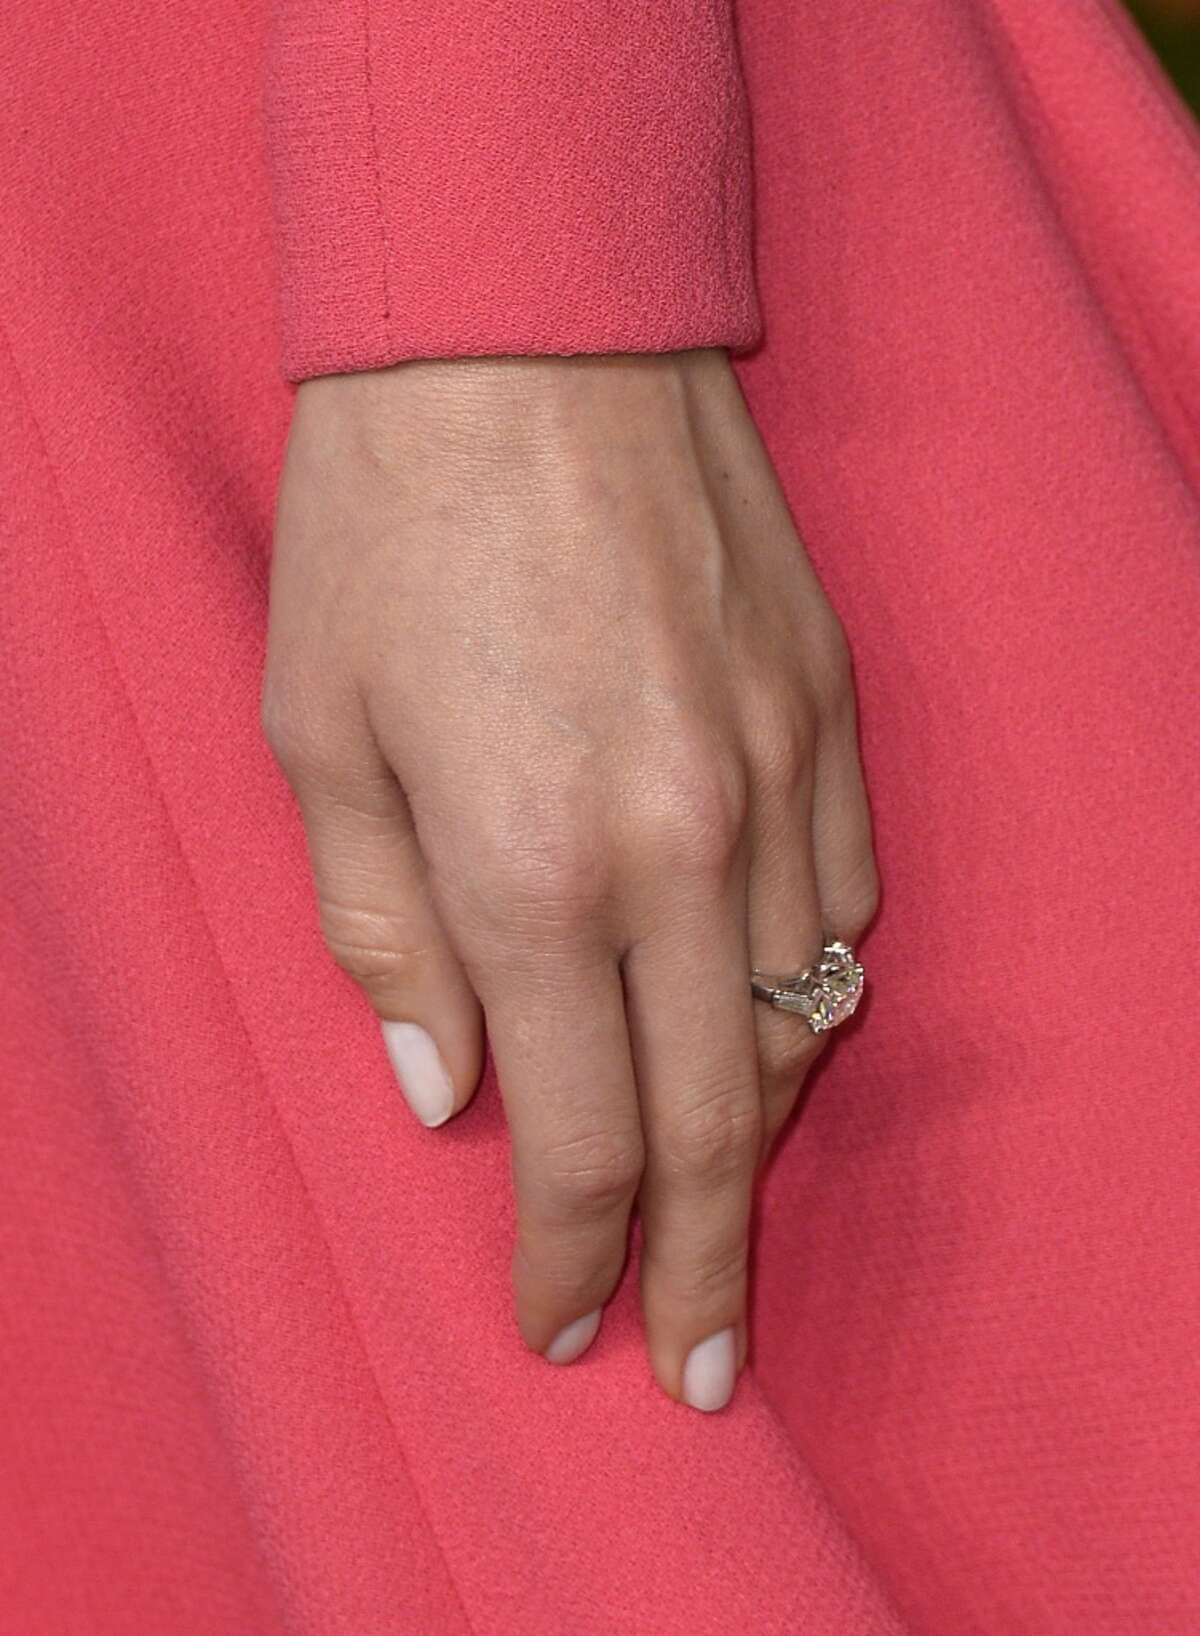 Allison Williams The Girls star was spotted with this ring at the 2014 Vanity Fair Oscar Party.